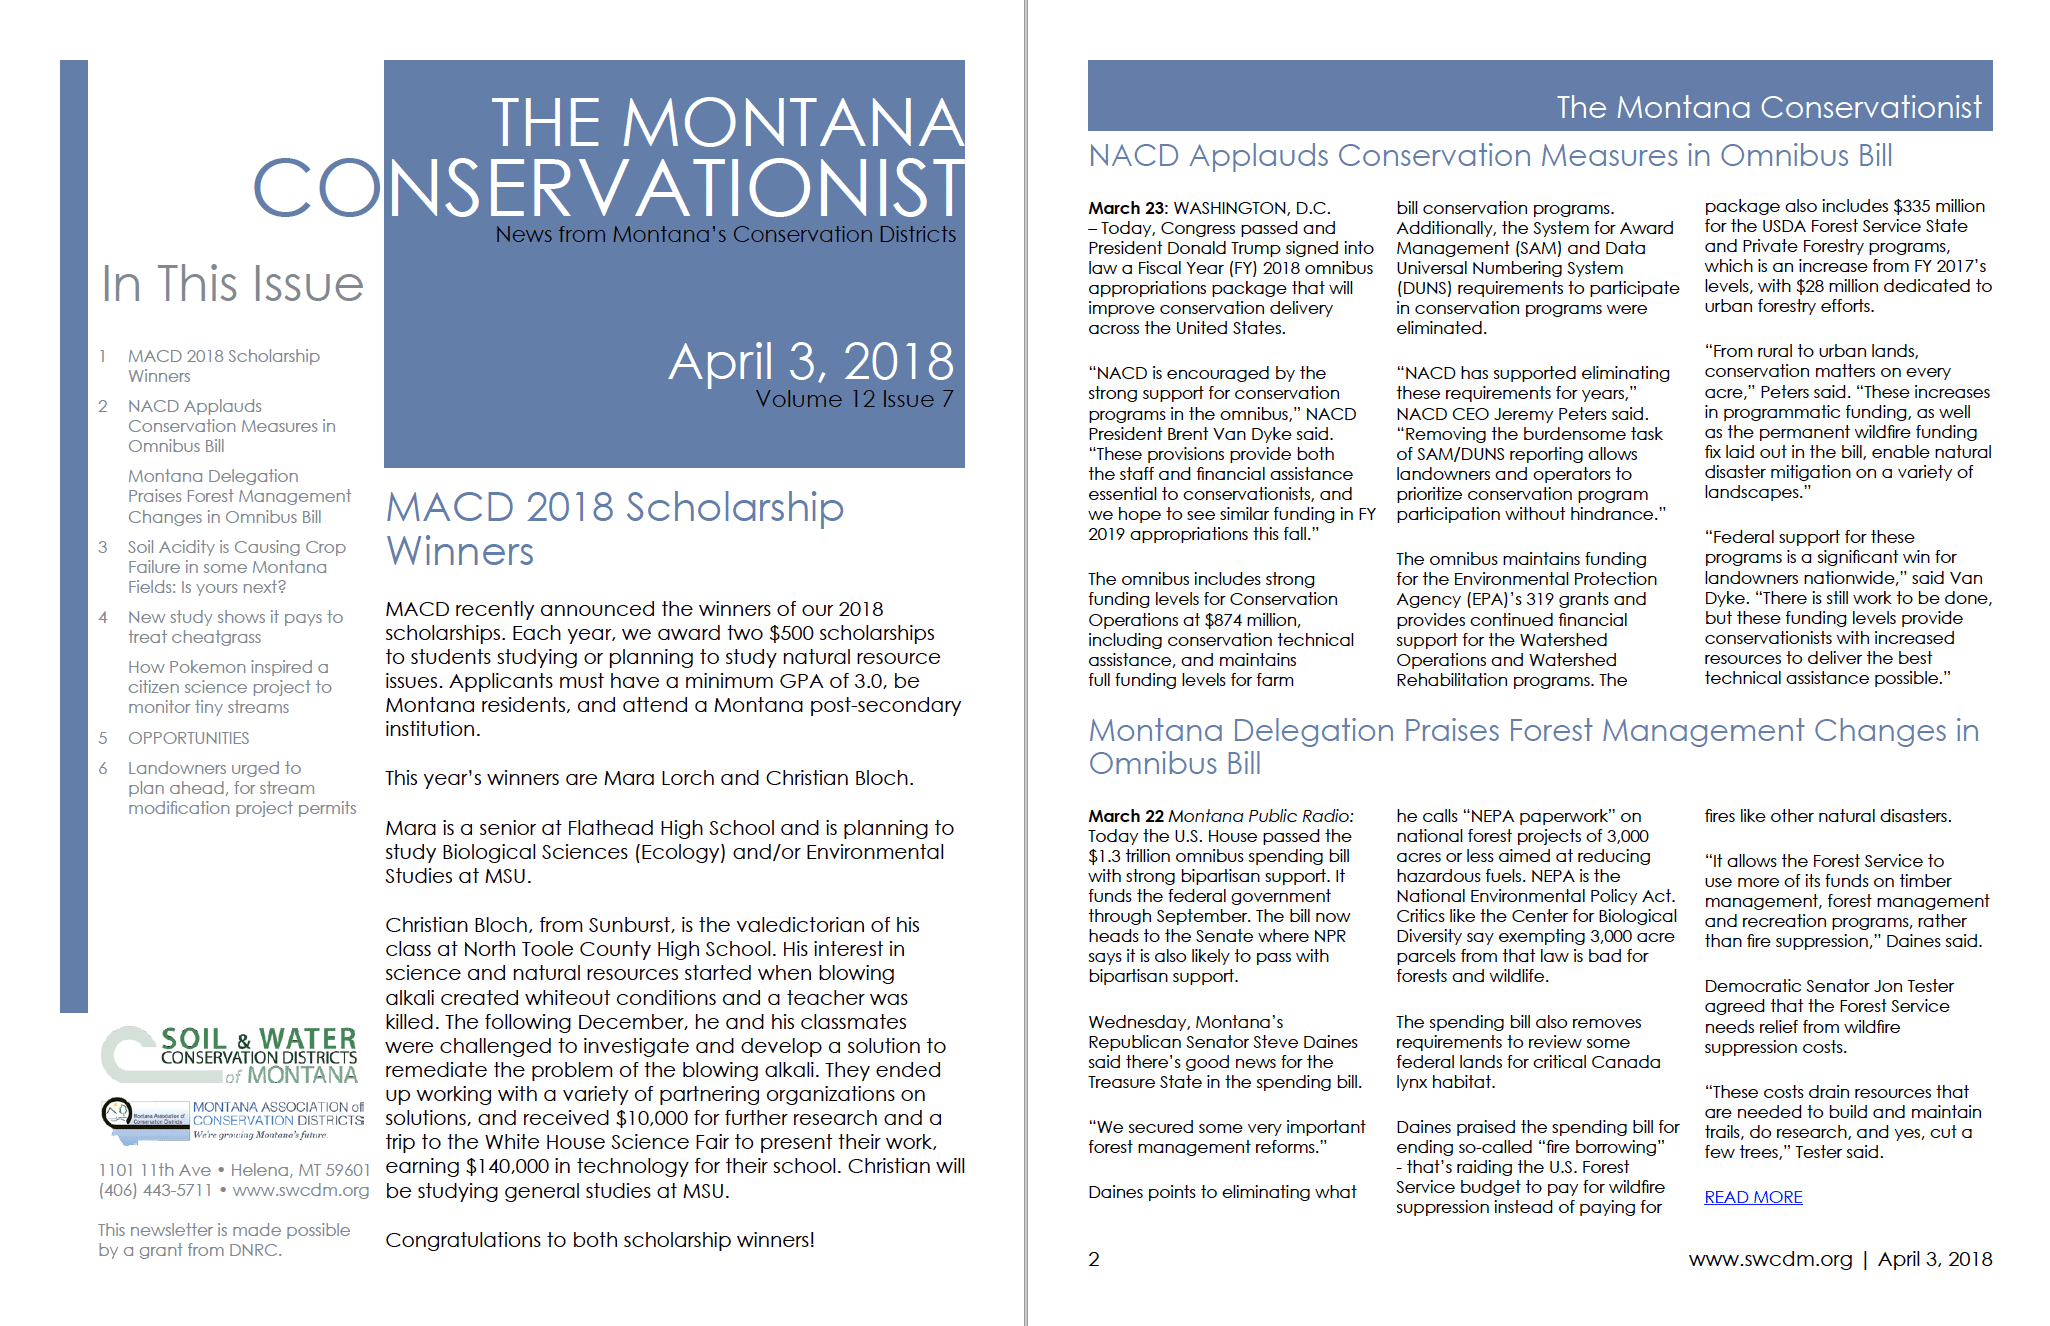 The Montana Conservationist April 3